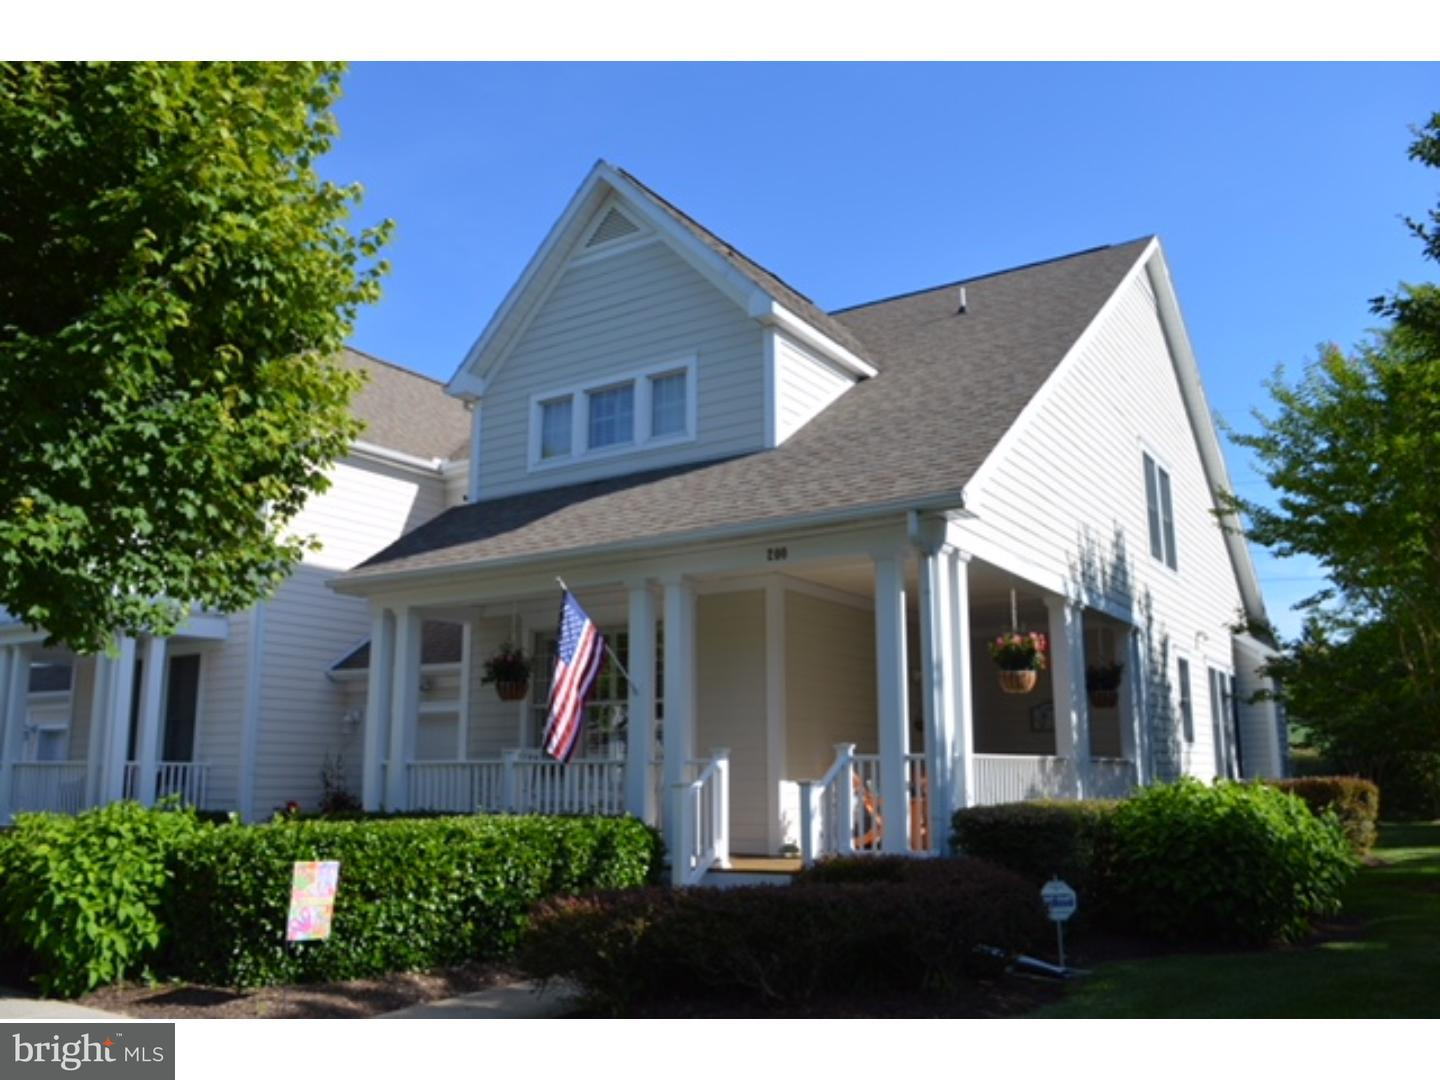 Single Family Home for Sale at 200 OCTOBER GLORY Avenue Ocean View, Delaware 19970 United States